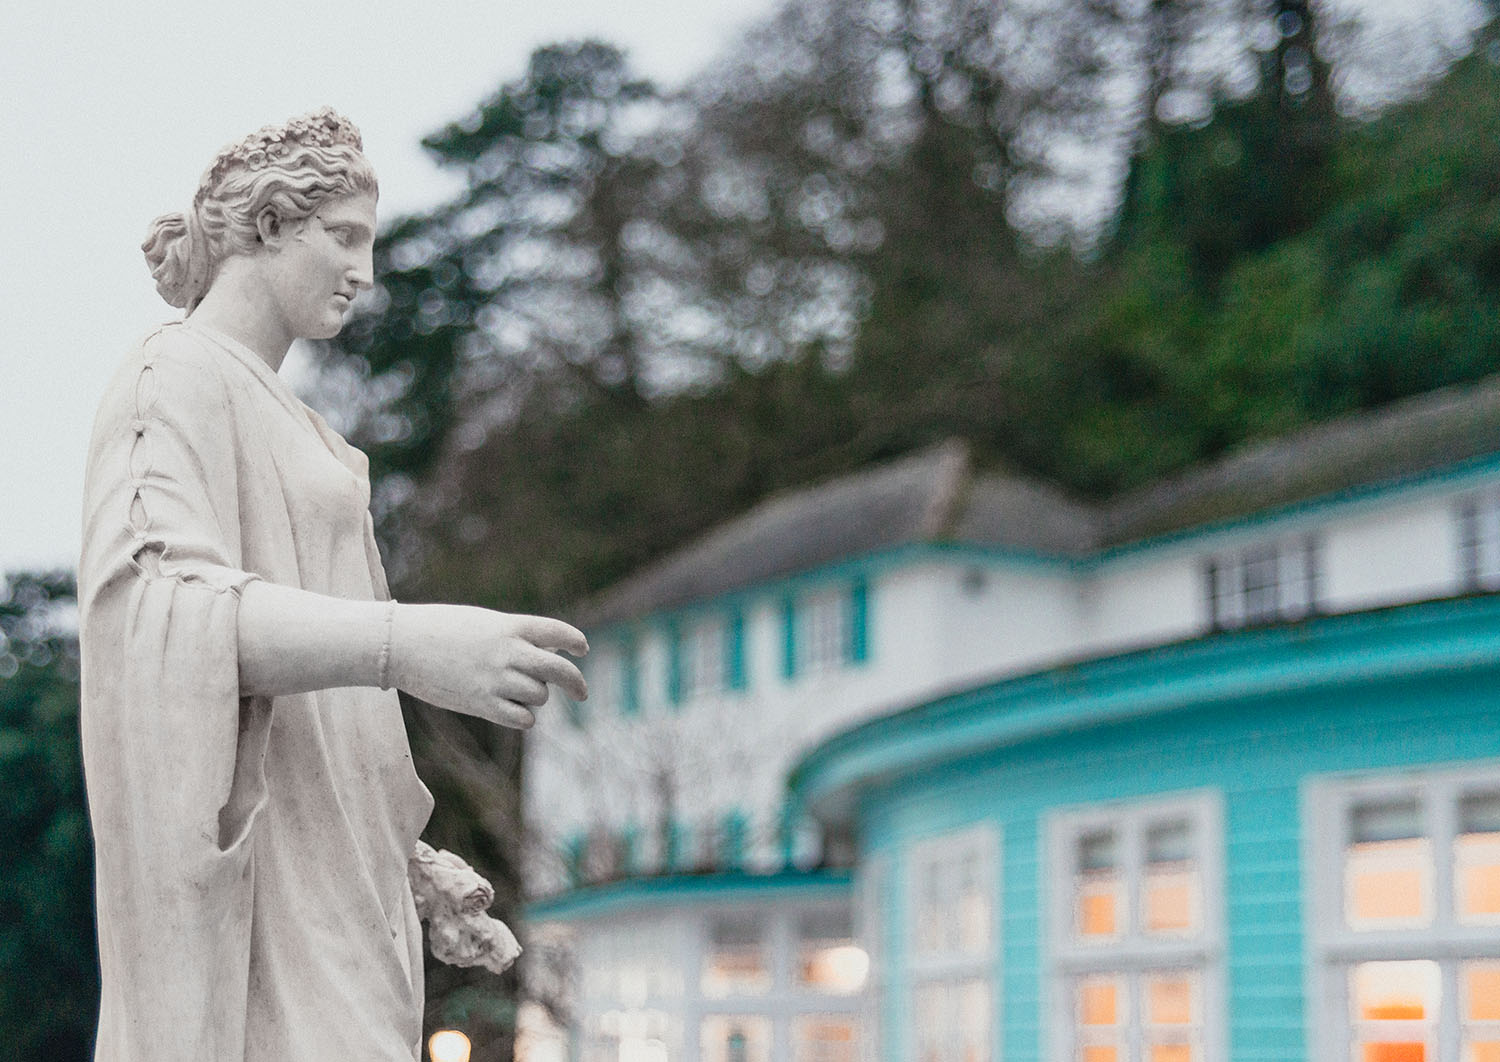 Woman Statue in Portmeirion